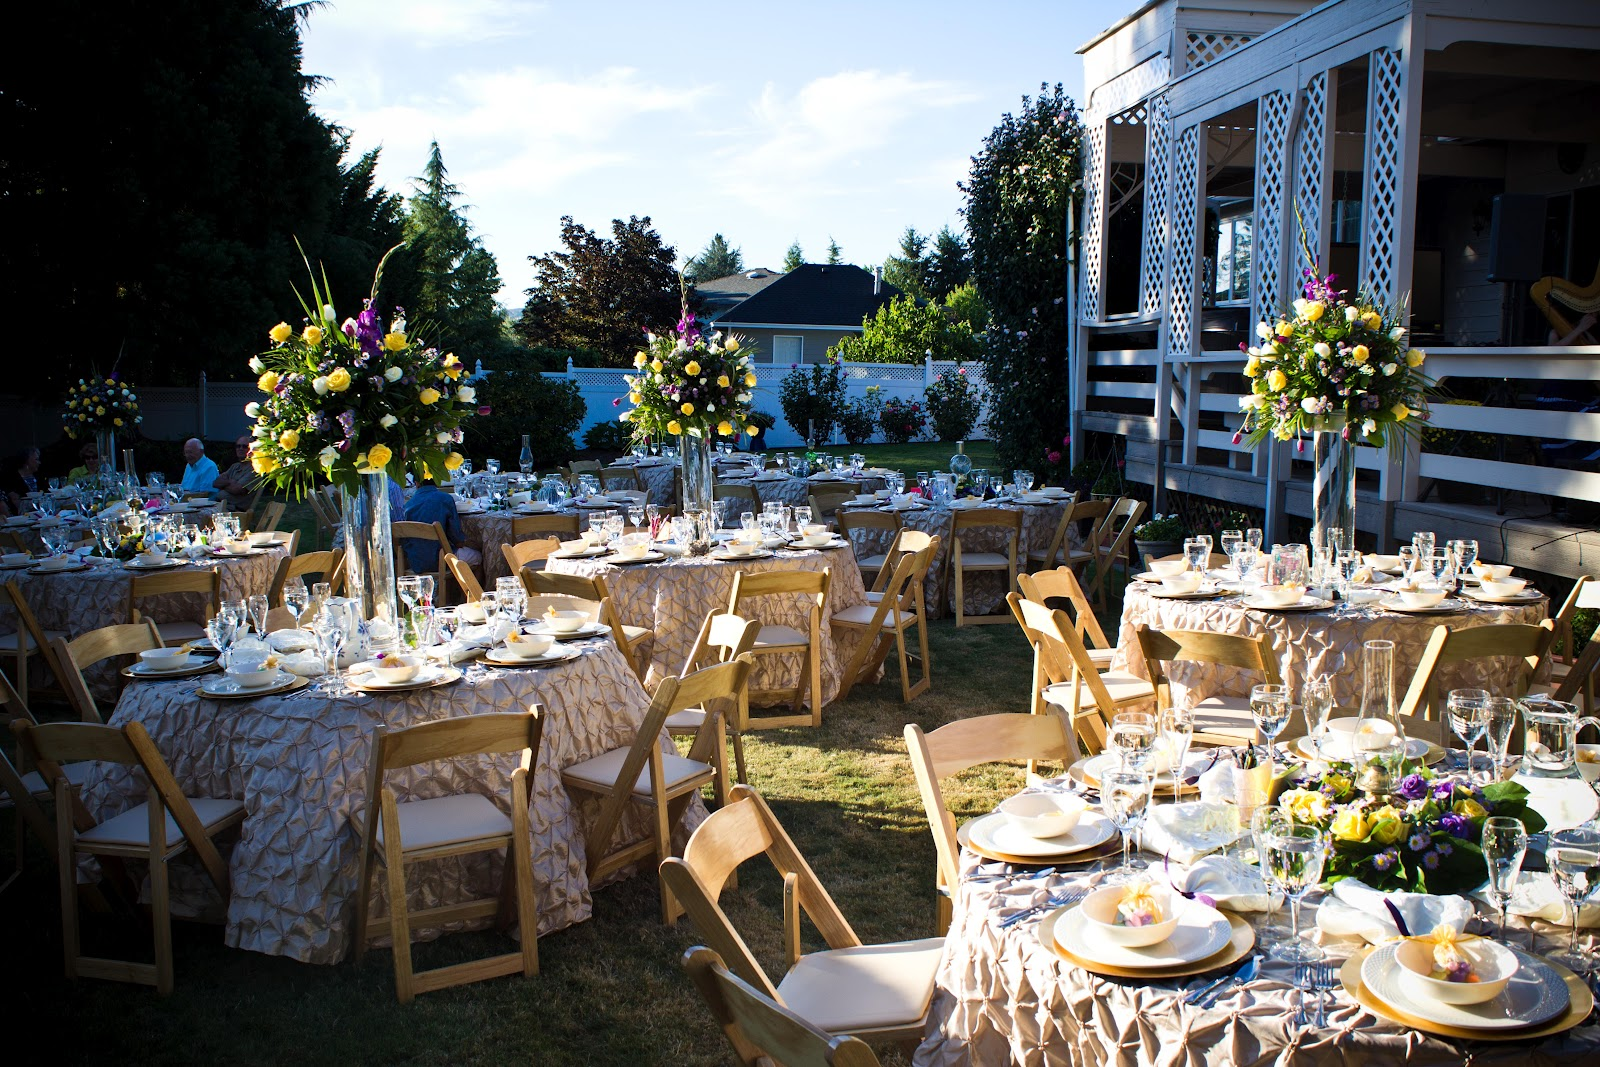 The perfect occasion weldon and beverly 39 s 50th wedding anniversary - Outdoor anniversary party ideas ...